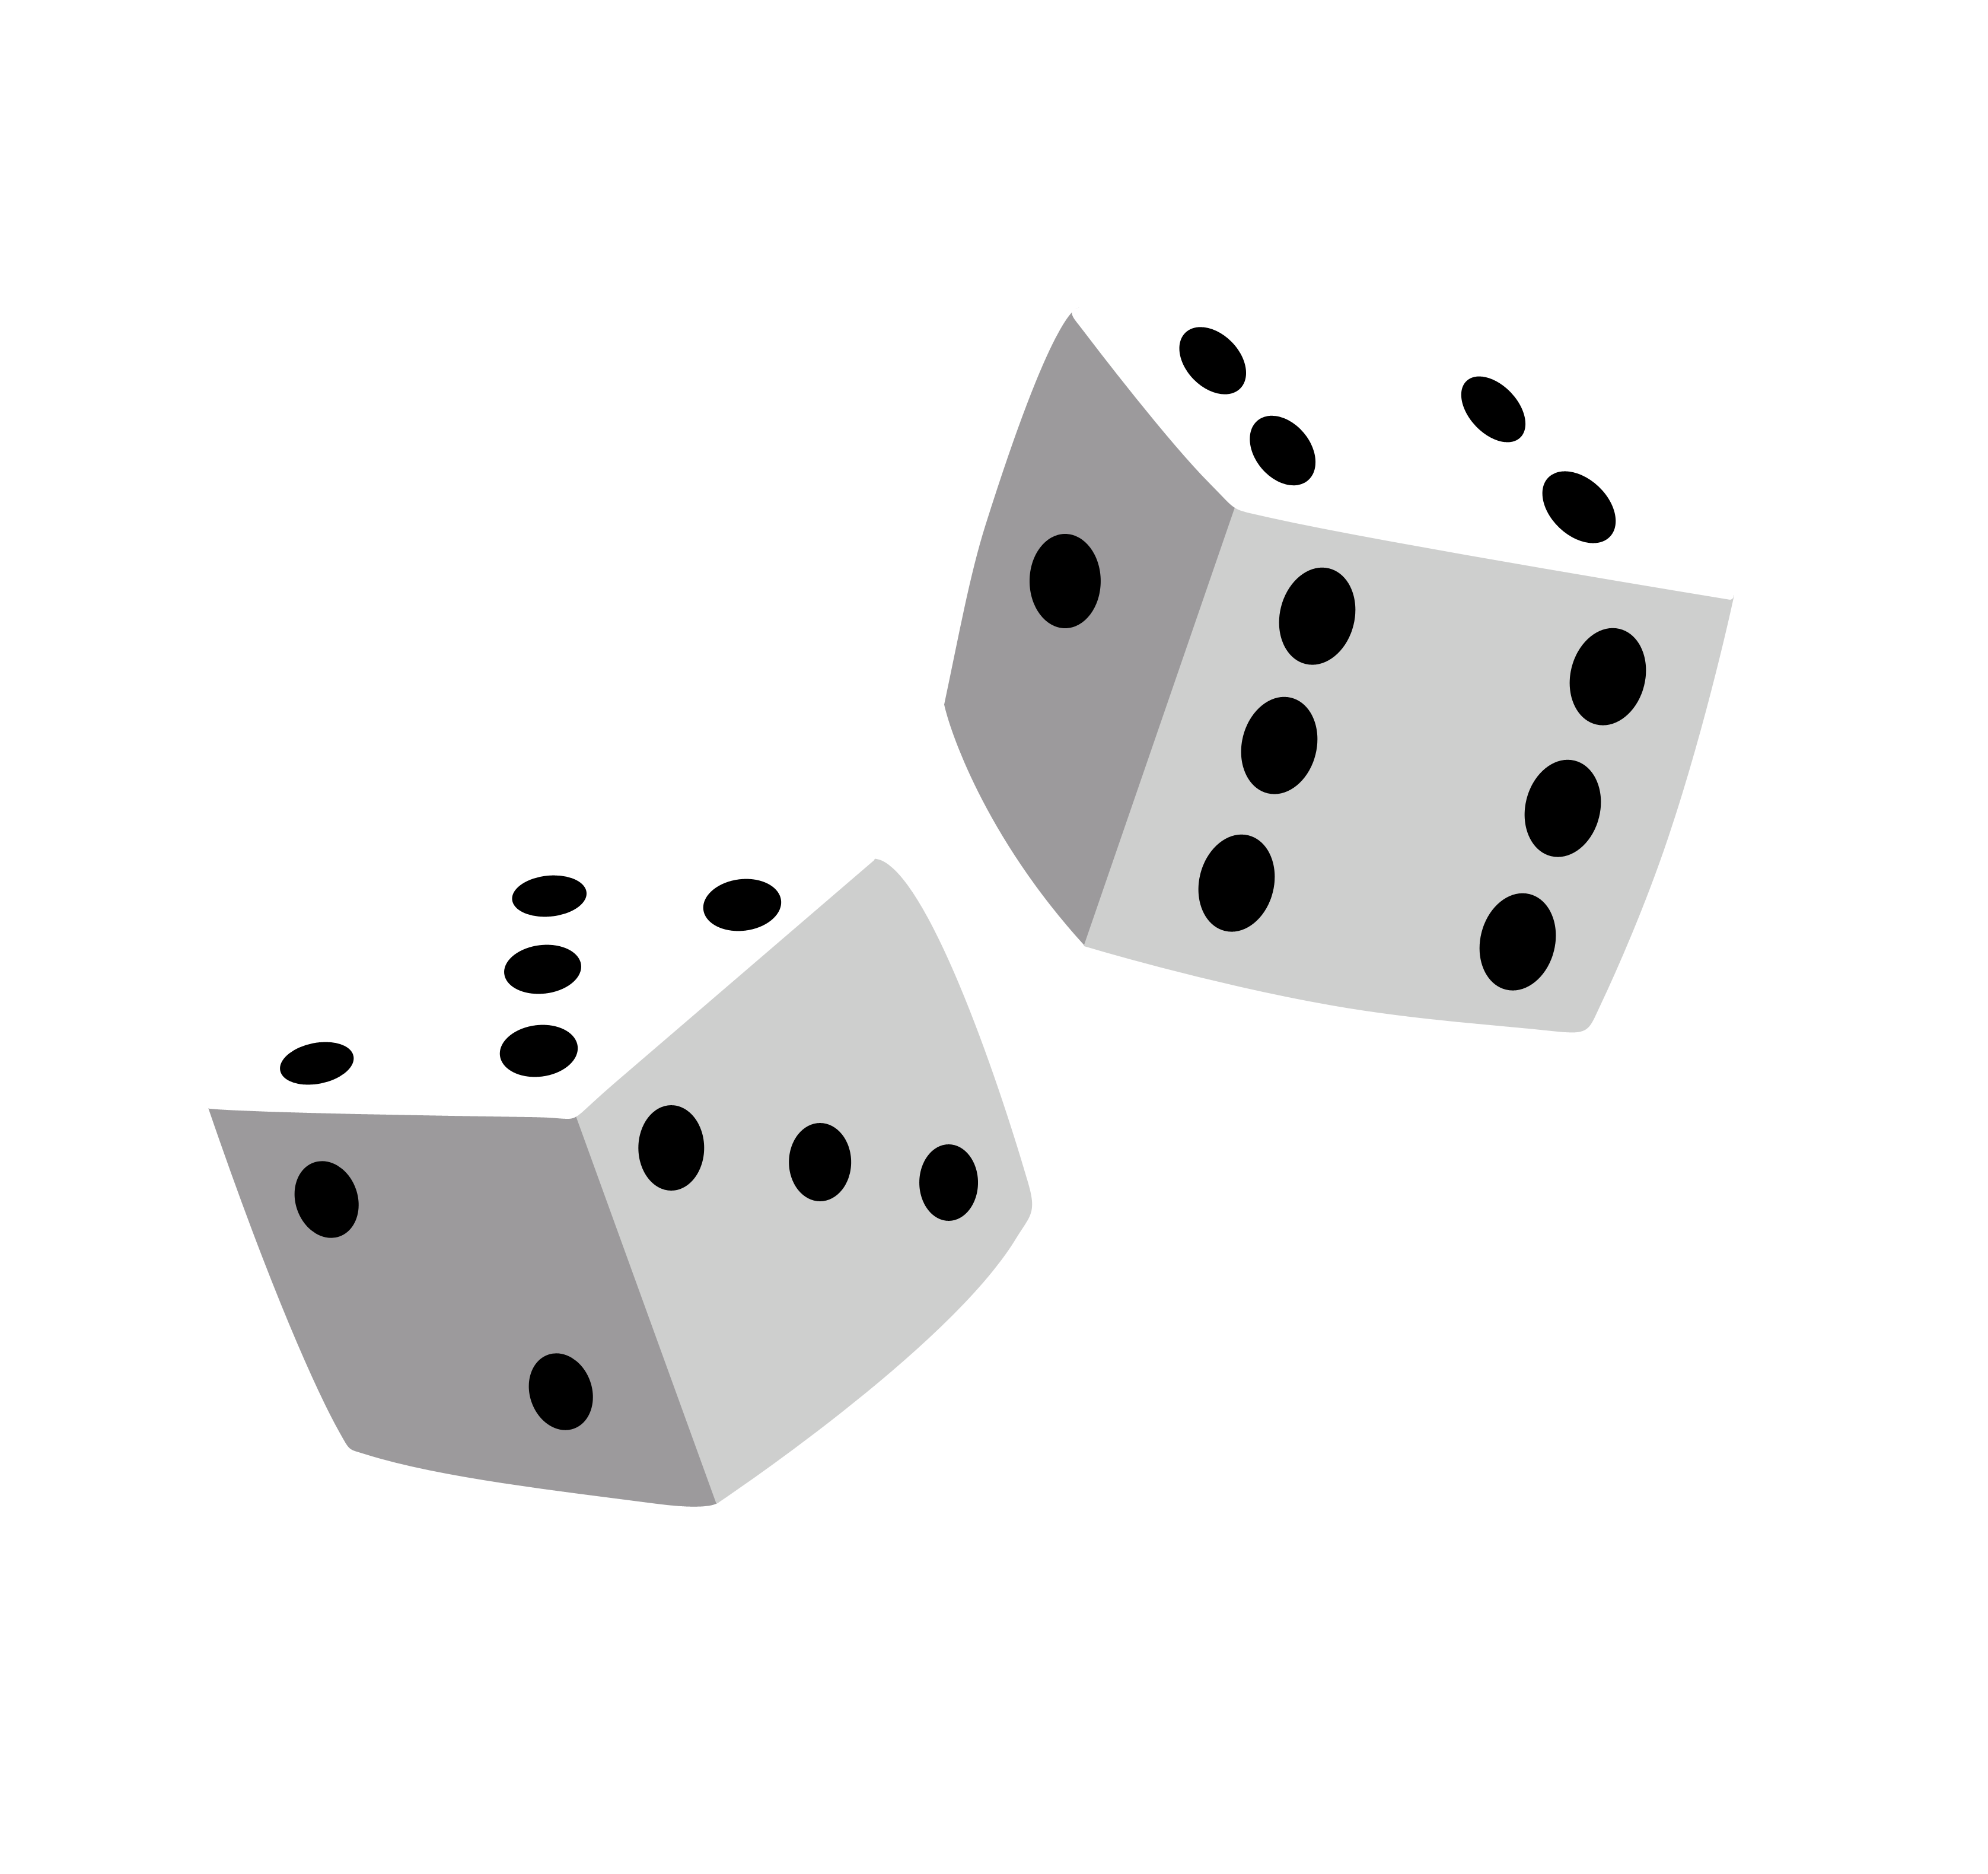 Dice clipart casino dice. Transparent png pictures free